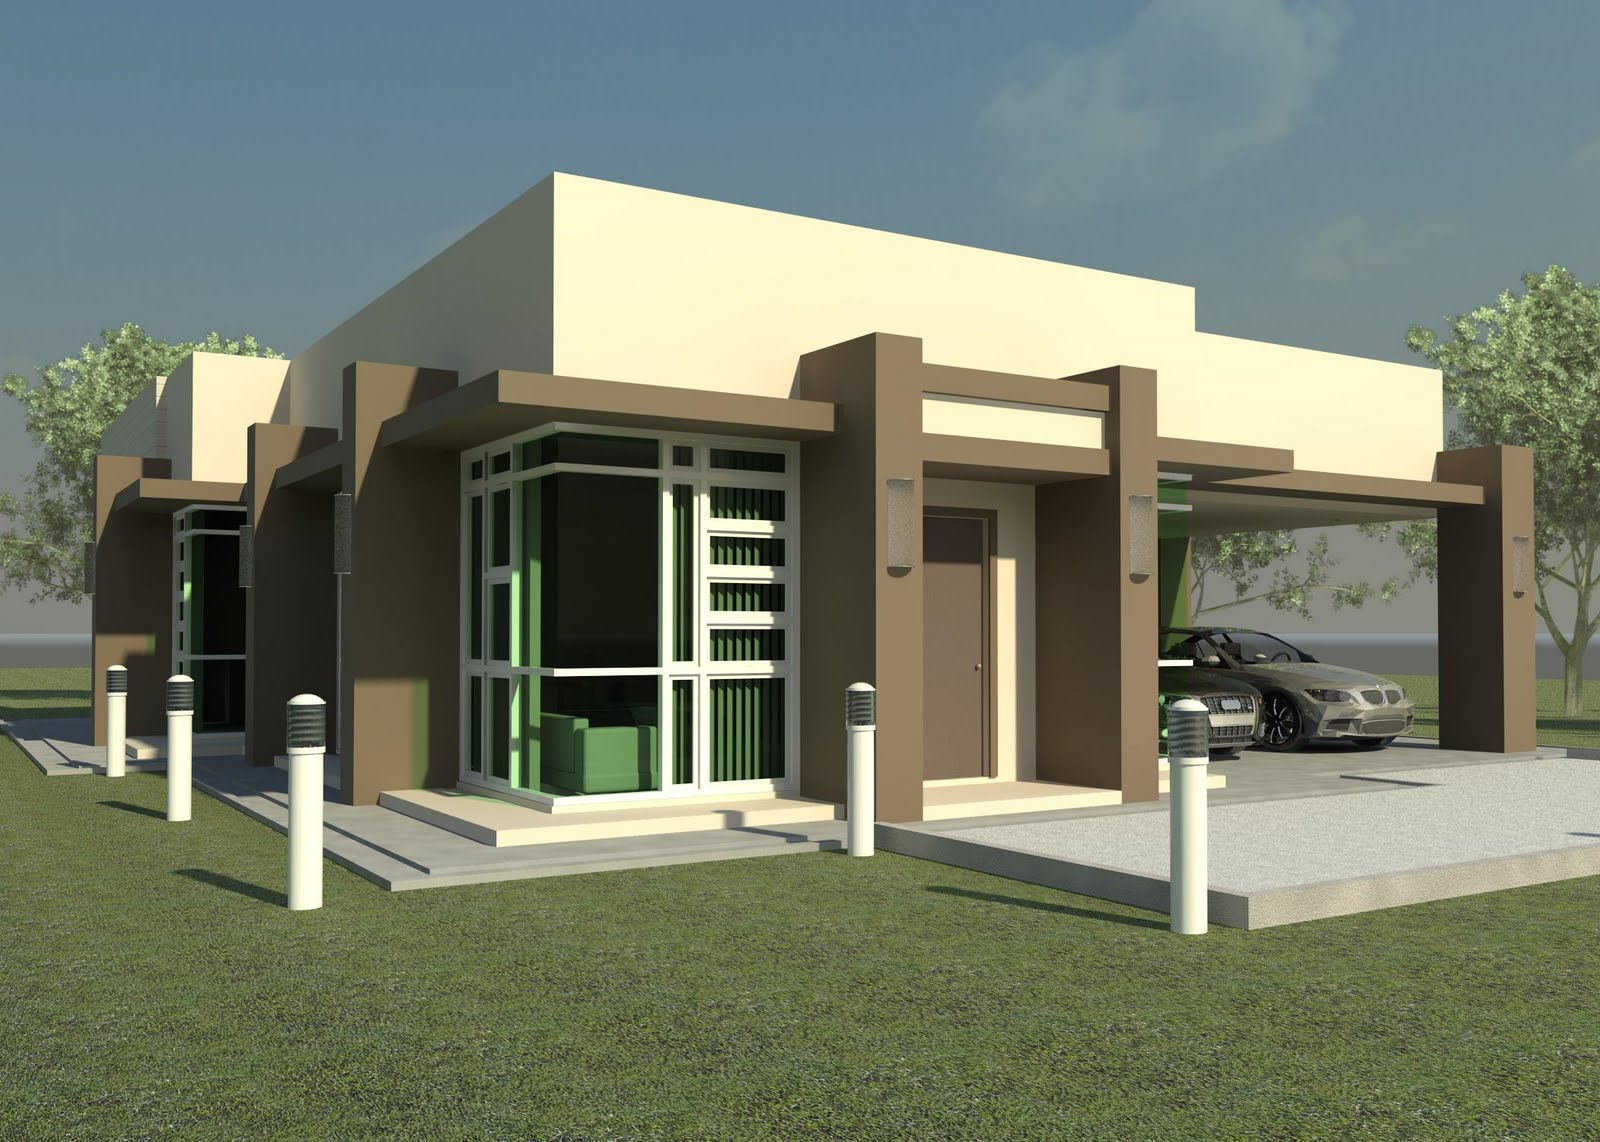 New home designs latest modern homes beautiful single for Contemporary single story house design